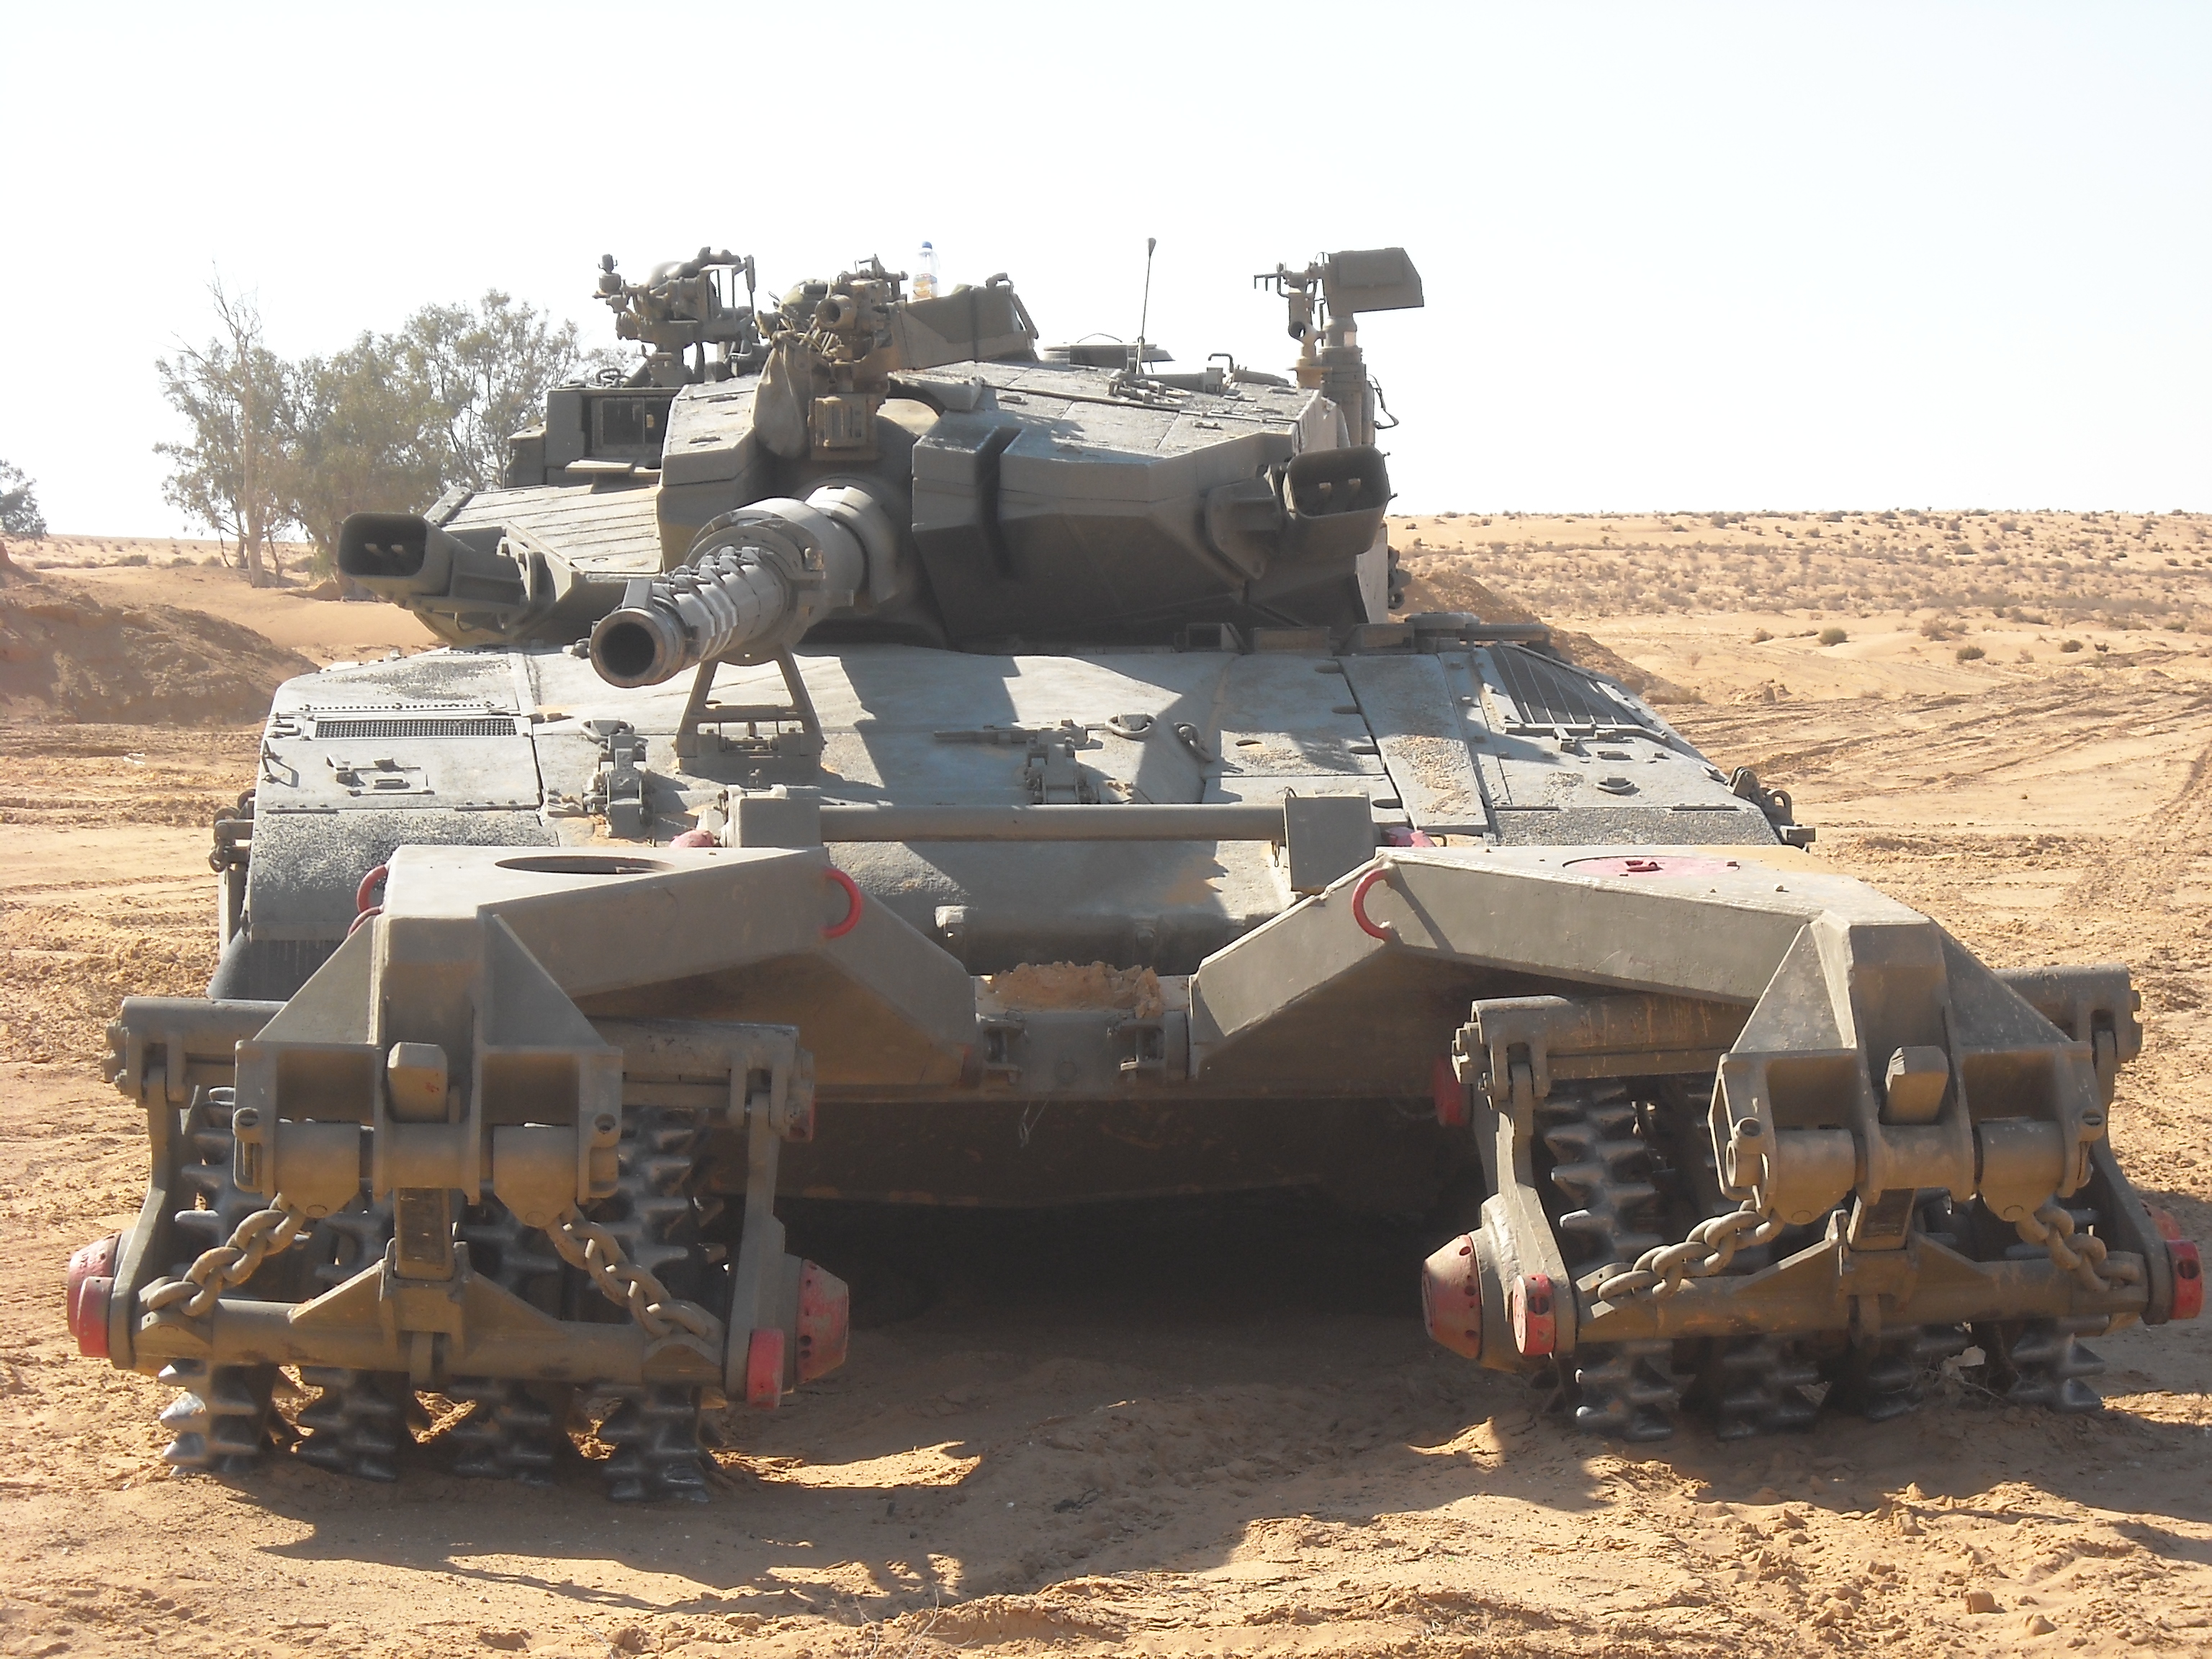 A_merkava_mk3_with_Mine_roller_2.jpg